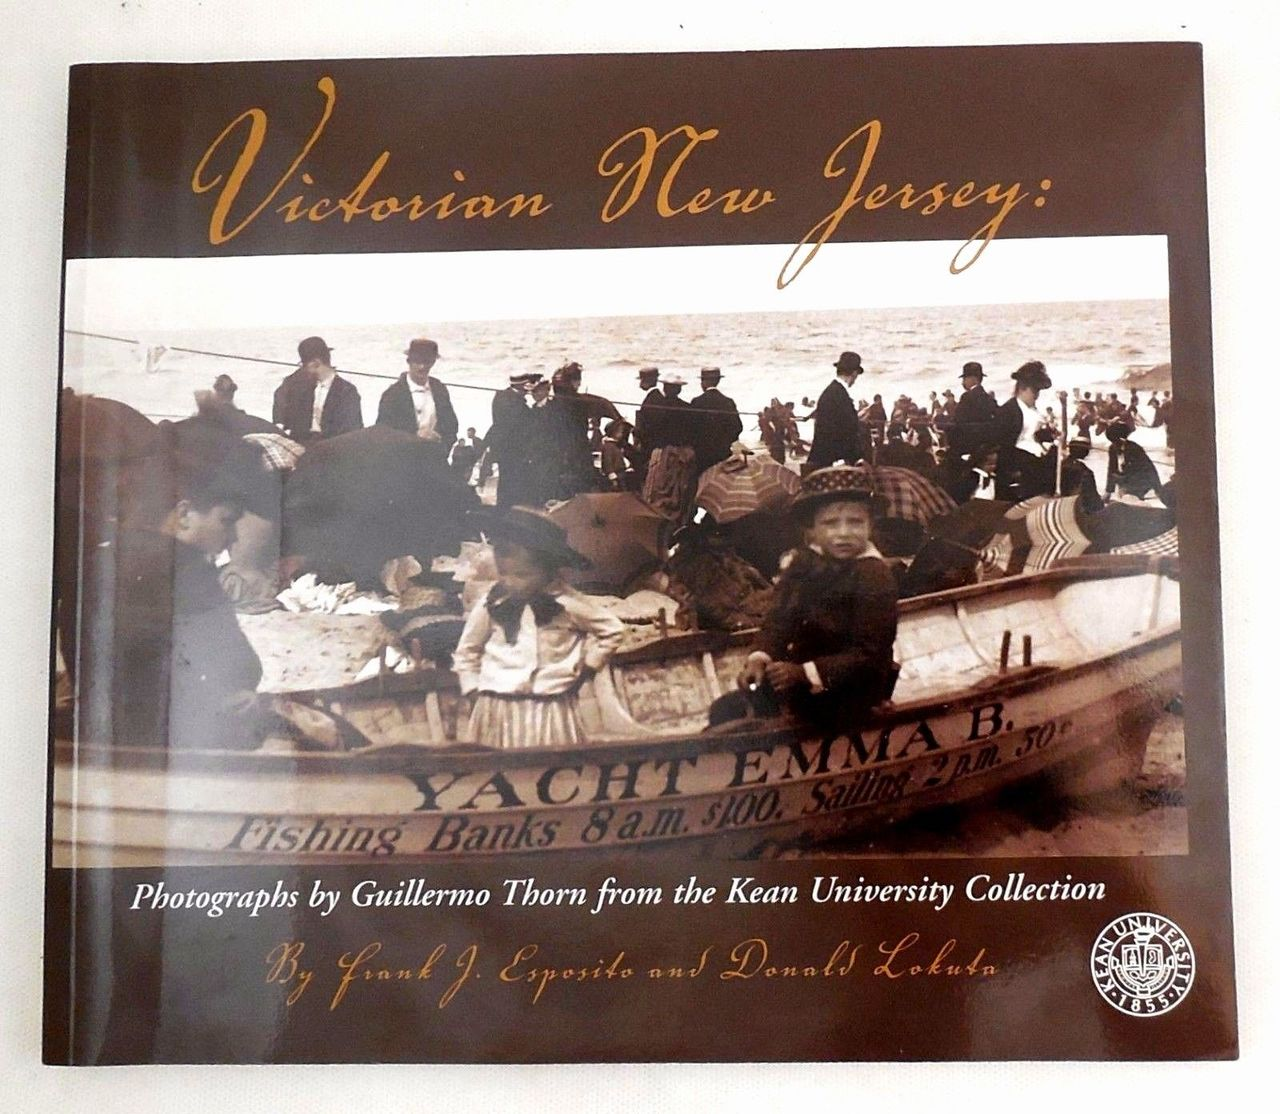 VICTORIAN NEW JERSEY: PHOTOGRAPHS BY GUILLERMO THORN - 2005 [1st Ed]